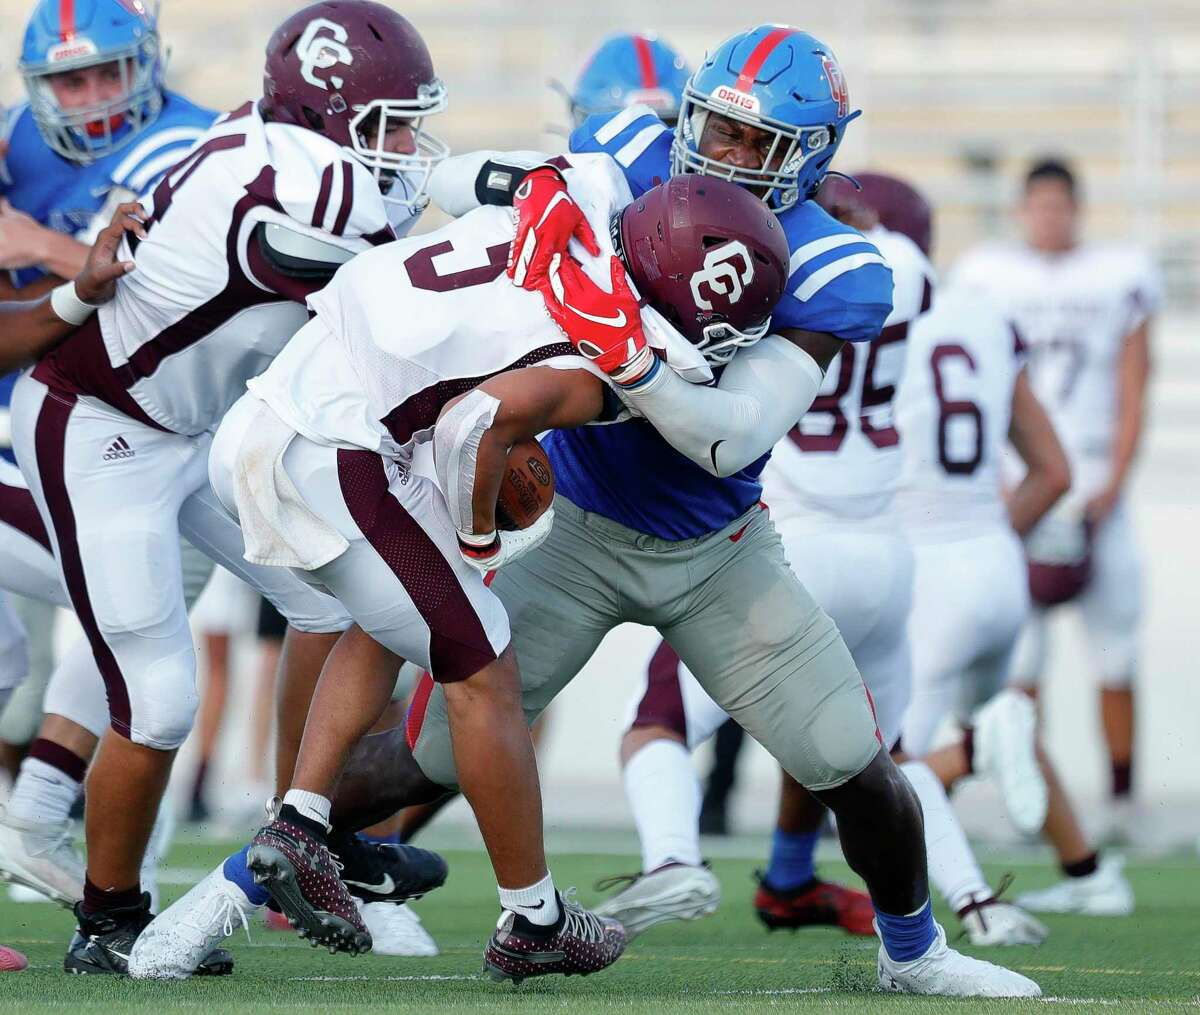 Oak Ridge outside linebacker KC Ossai (8) tackles Clear Creek running back Jeremiah Crum (5) for a loss on third down during the first quarter of a non-district high school football game at Woodforest Bank Stadium, Saturday, Sept. 26, 2020, in Shenandoah.